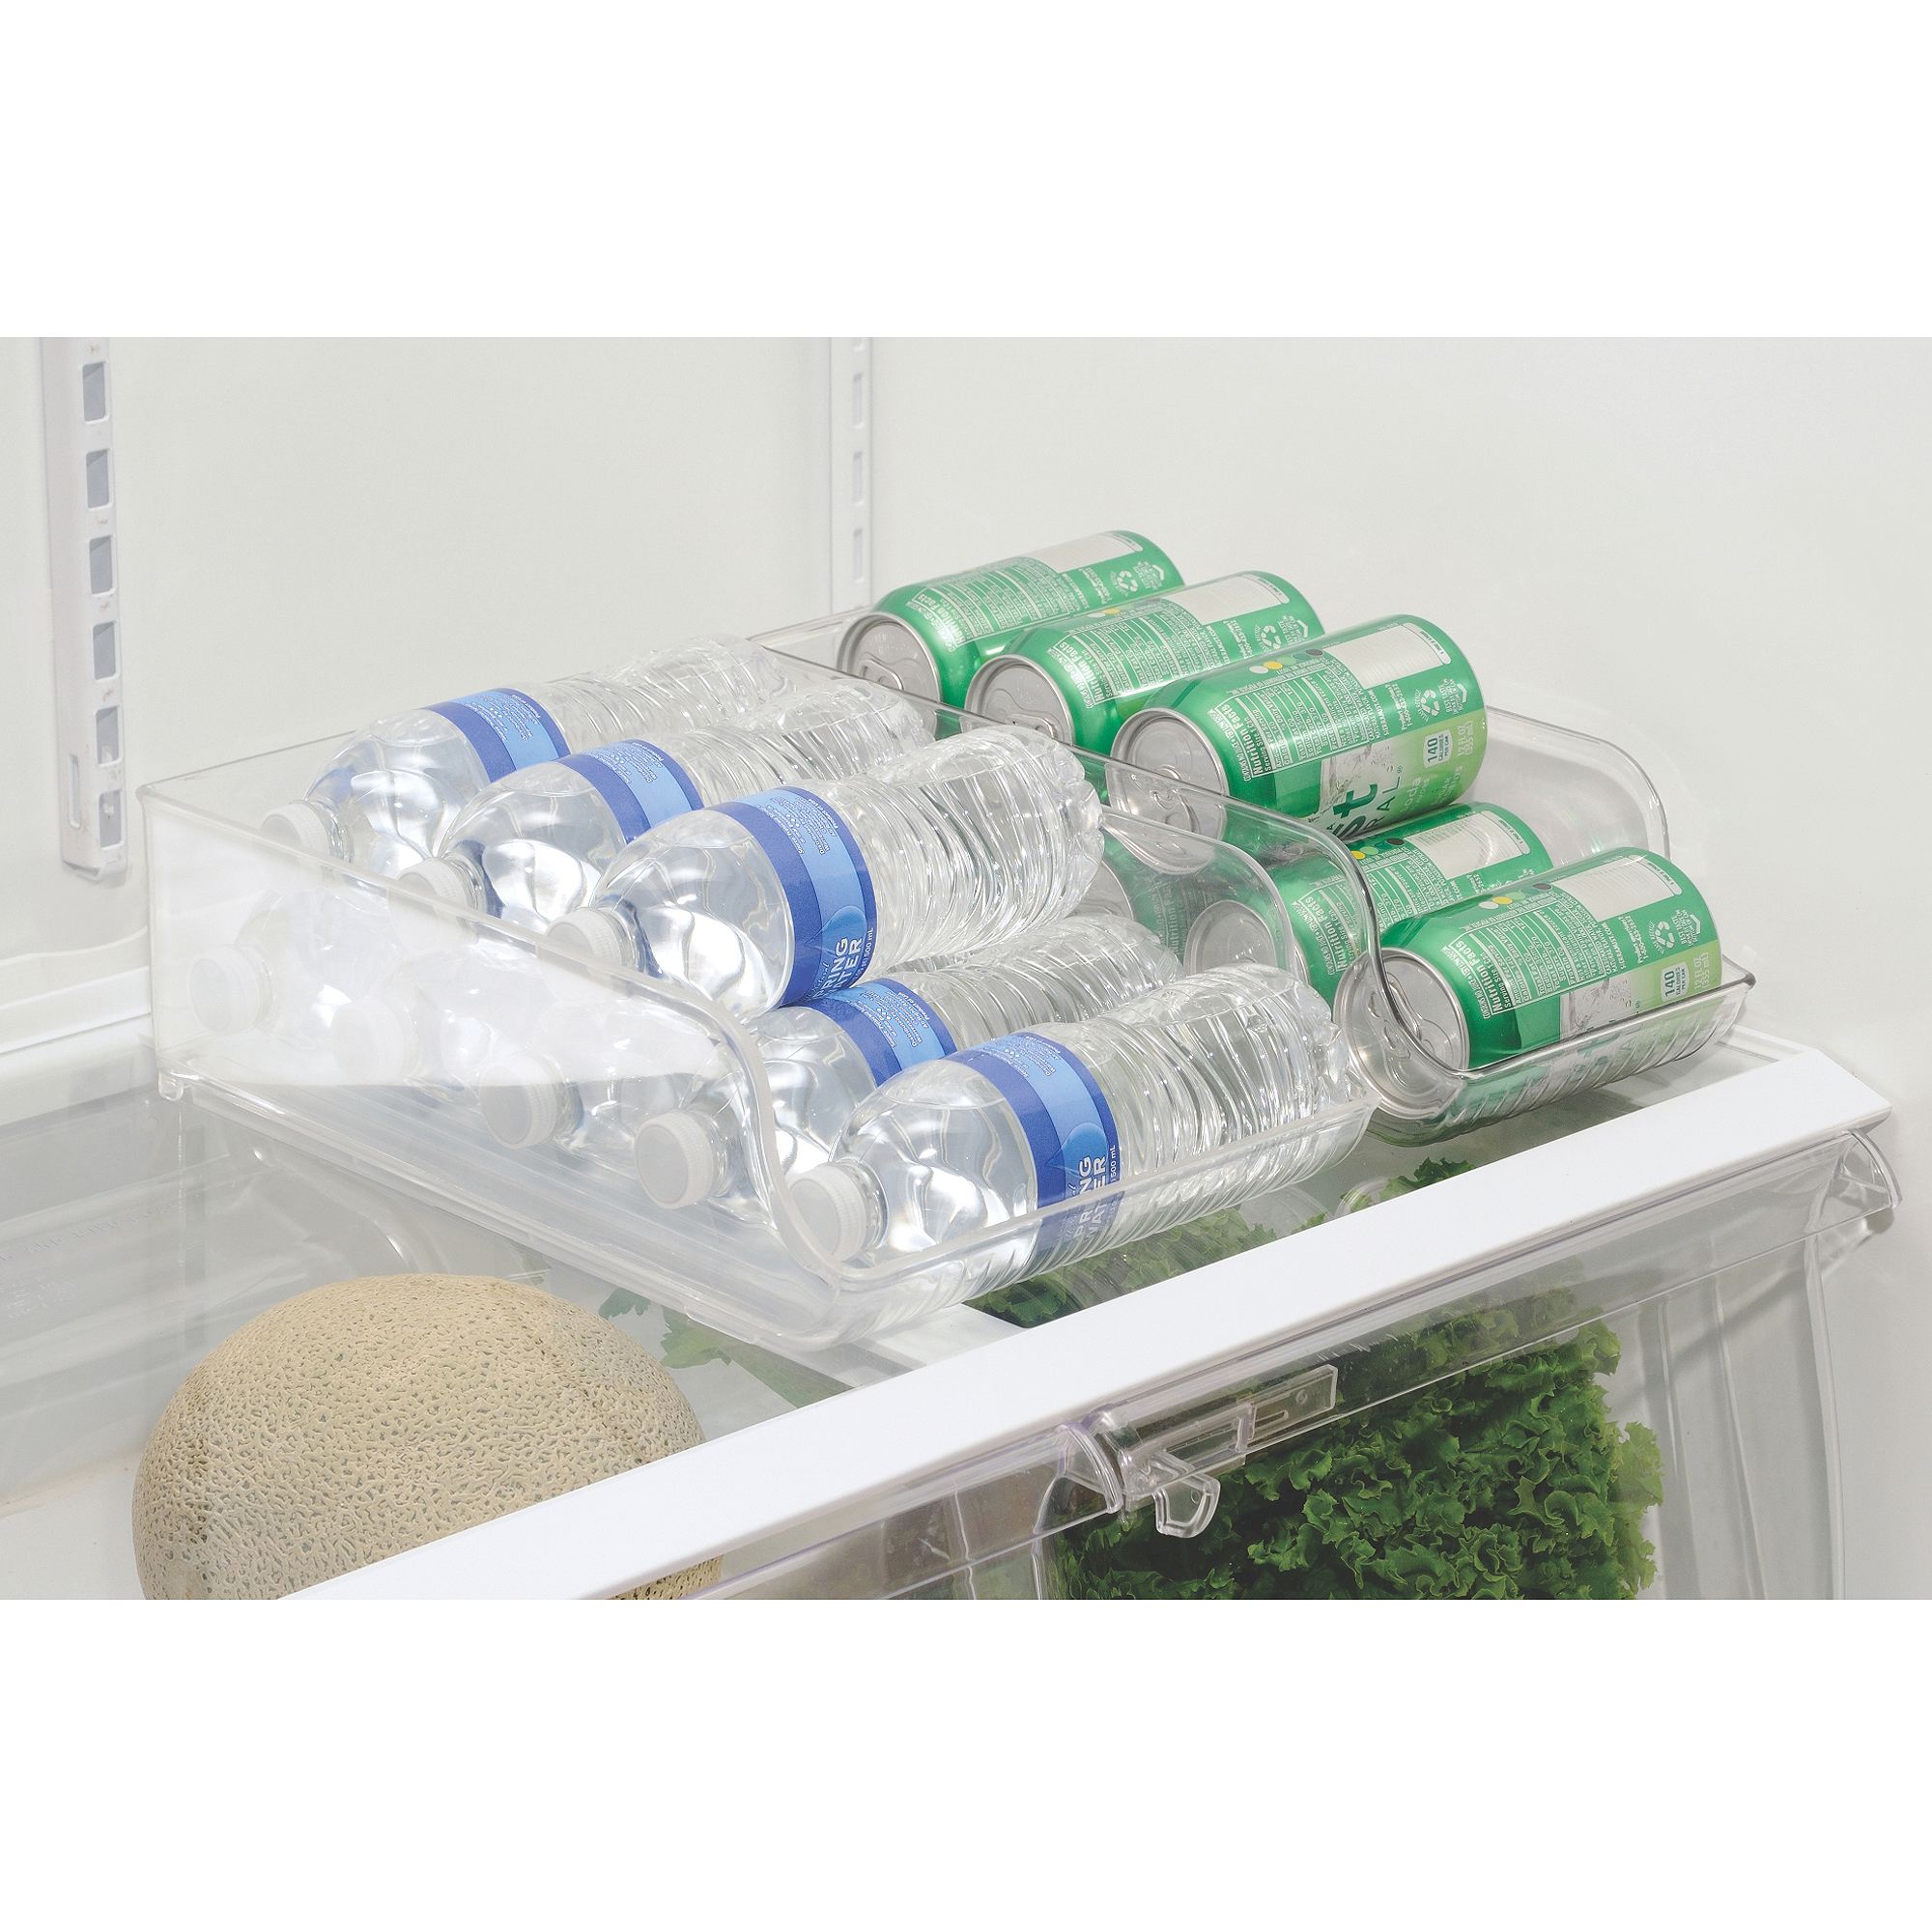 InterDesign Fridge Binz Water Bottle Holder